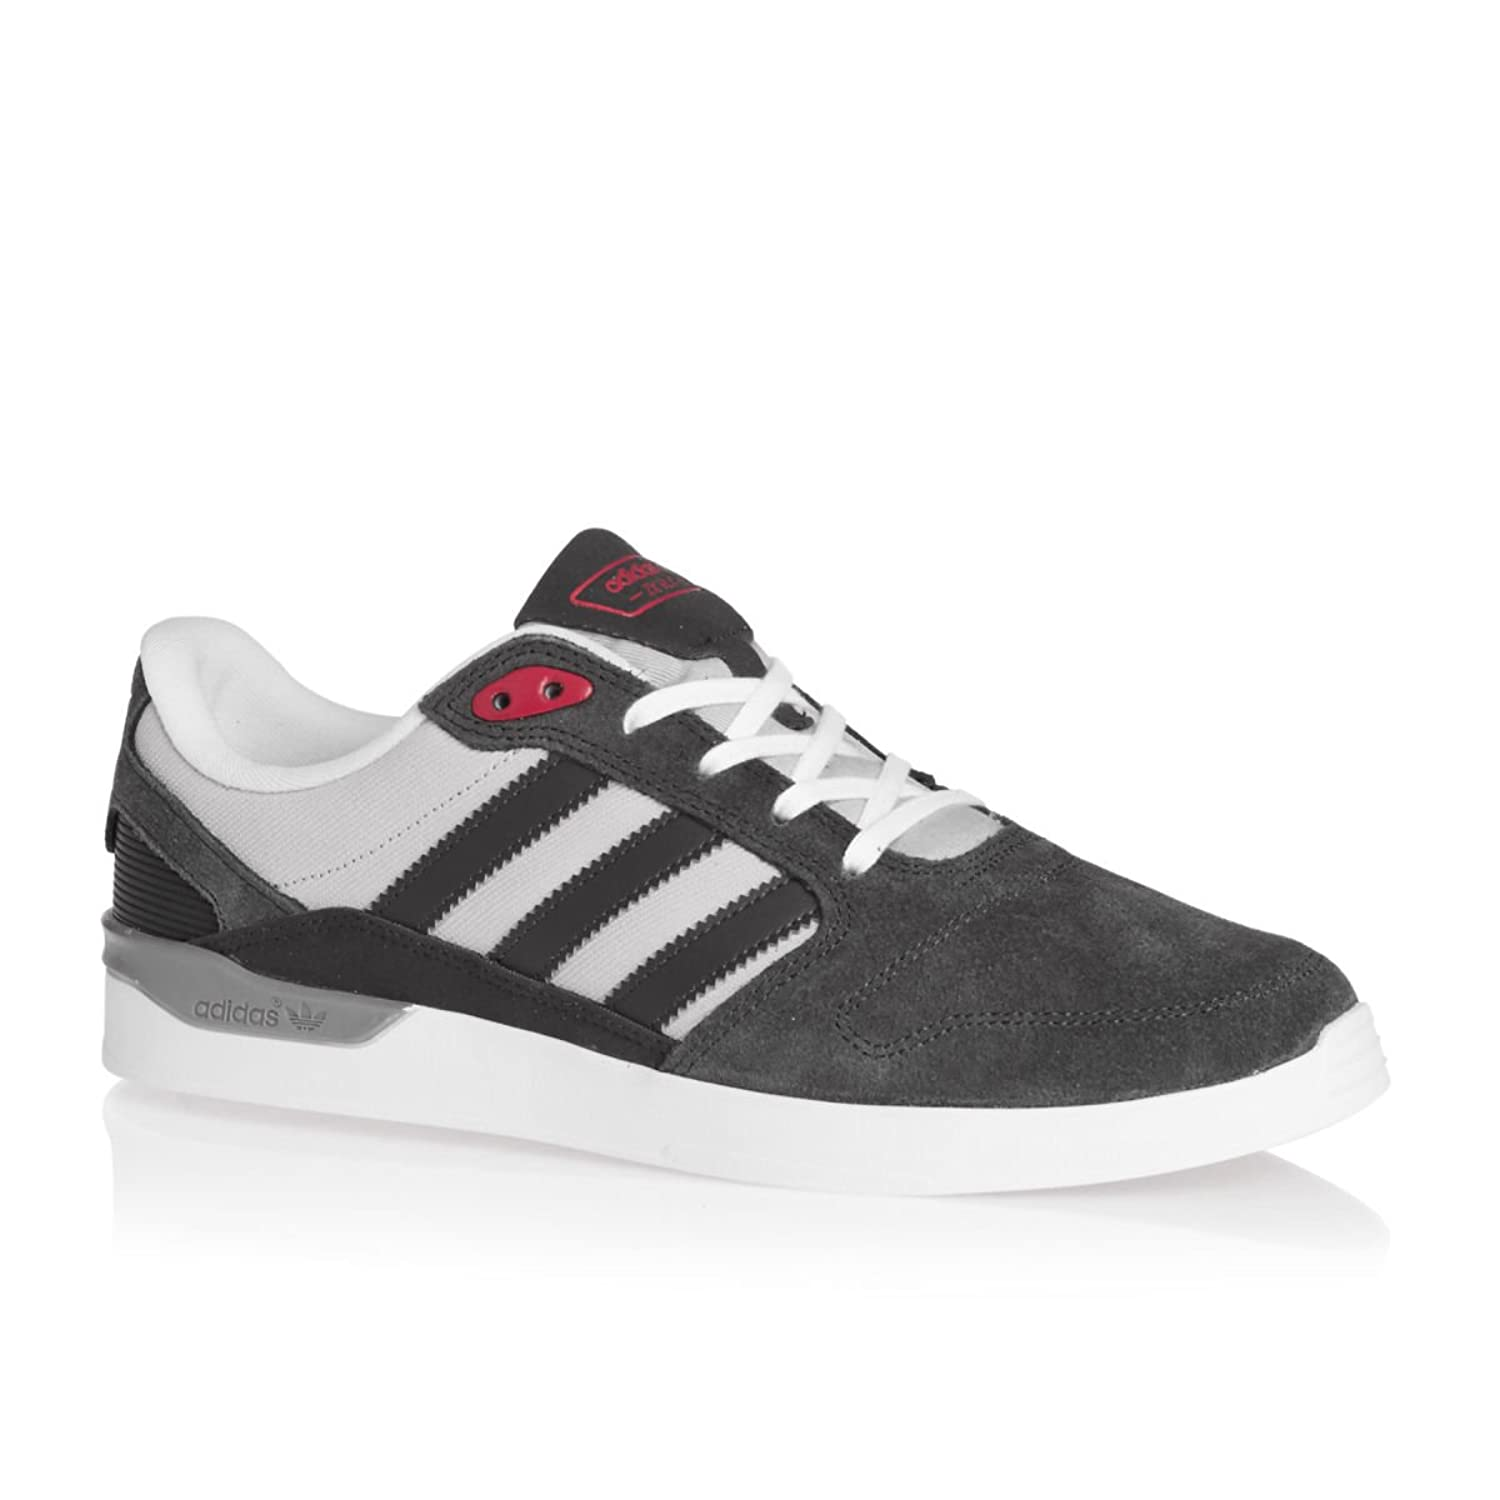 adidas Originals Men's Zx Vulc Dgsogr/Lgsogr/Scarle Leather Sneakers - 7  UK/India (40.67 EU): Buy Online at Low Prices in India - Amazon.in